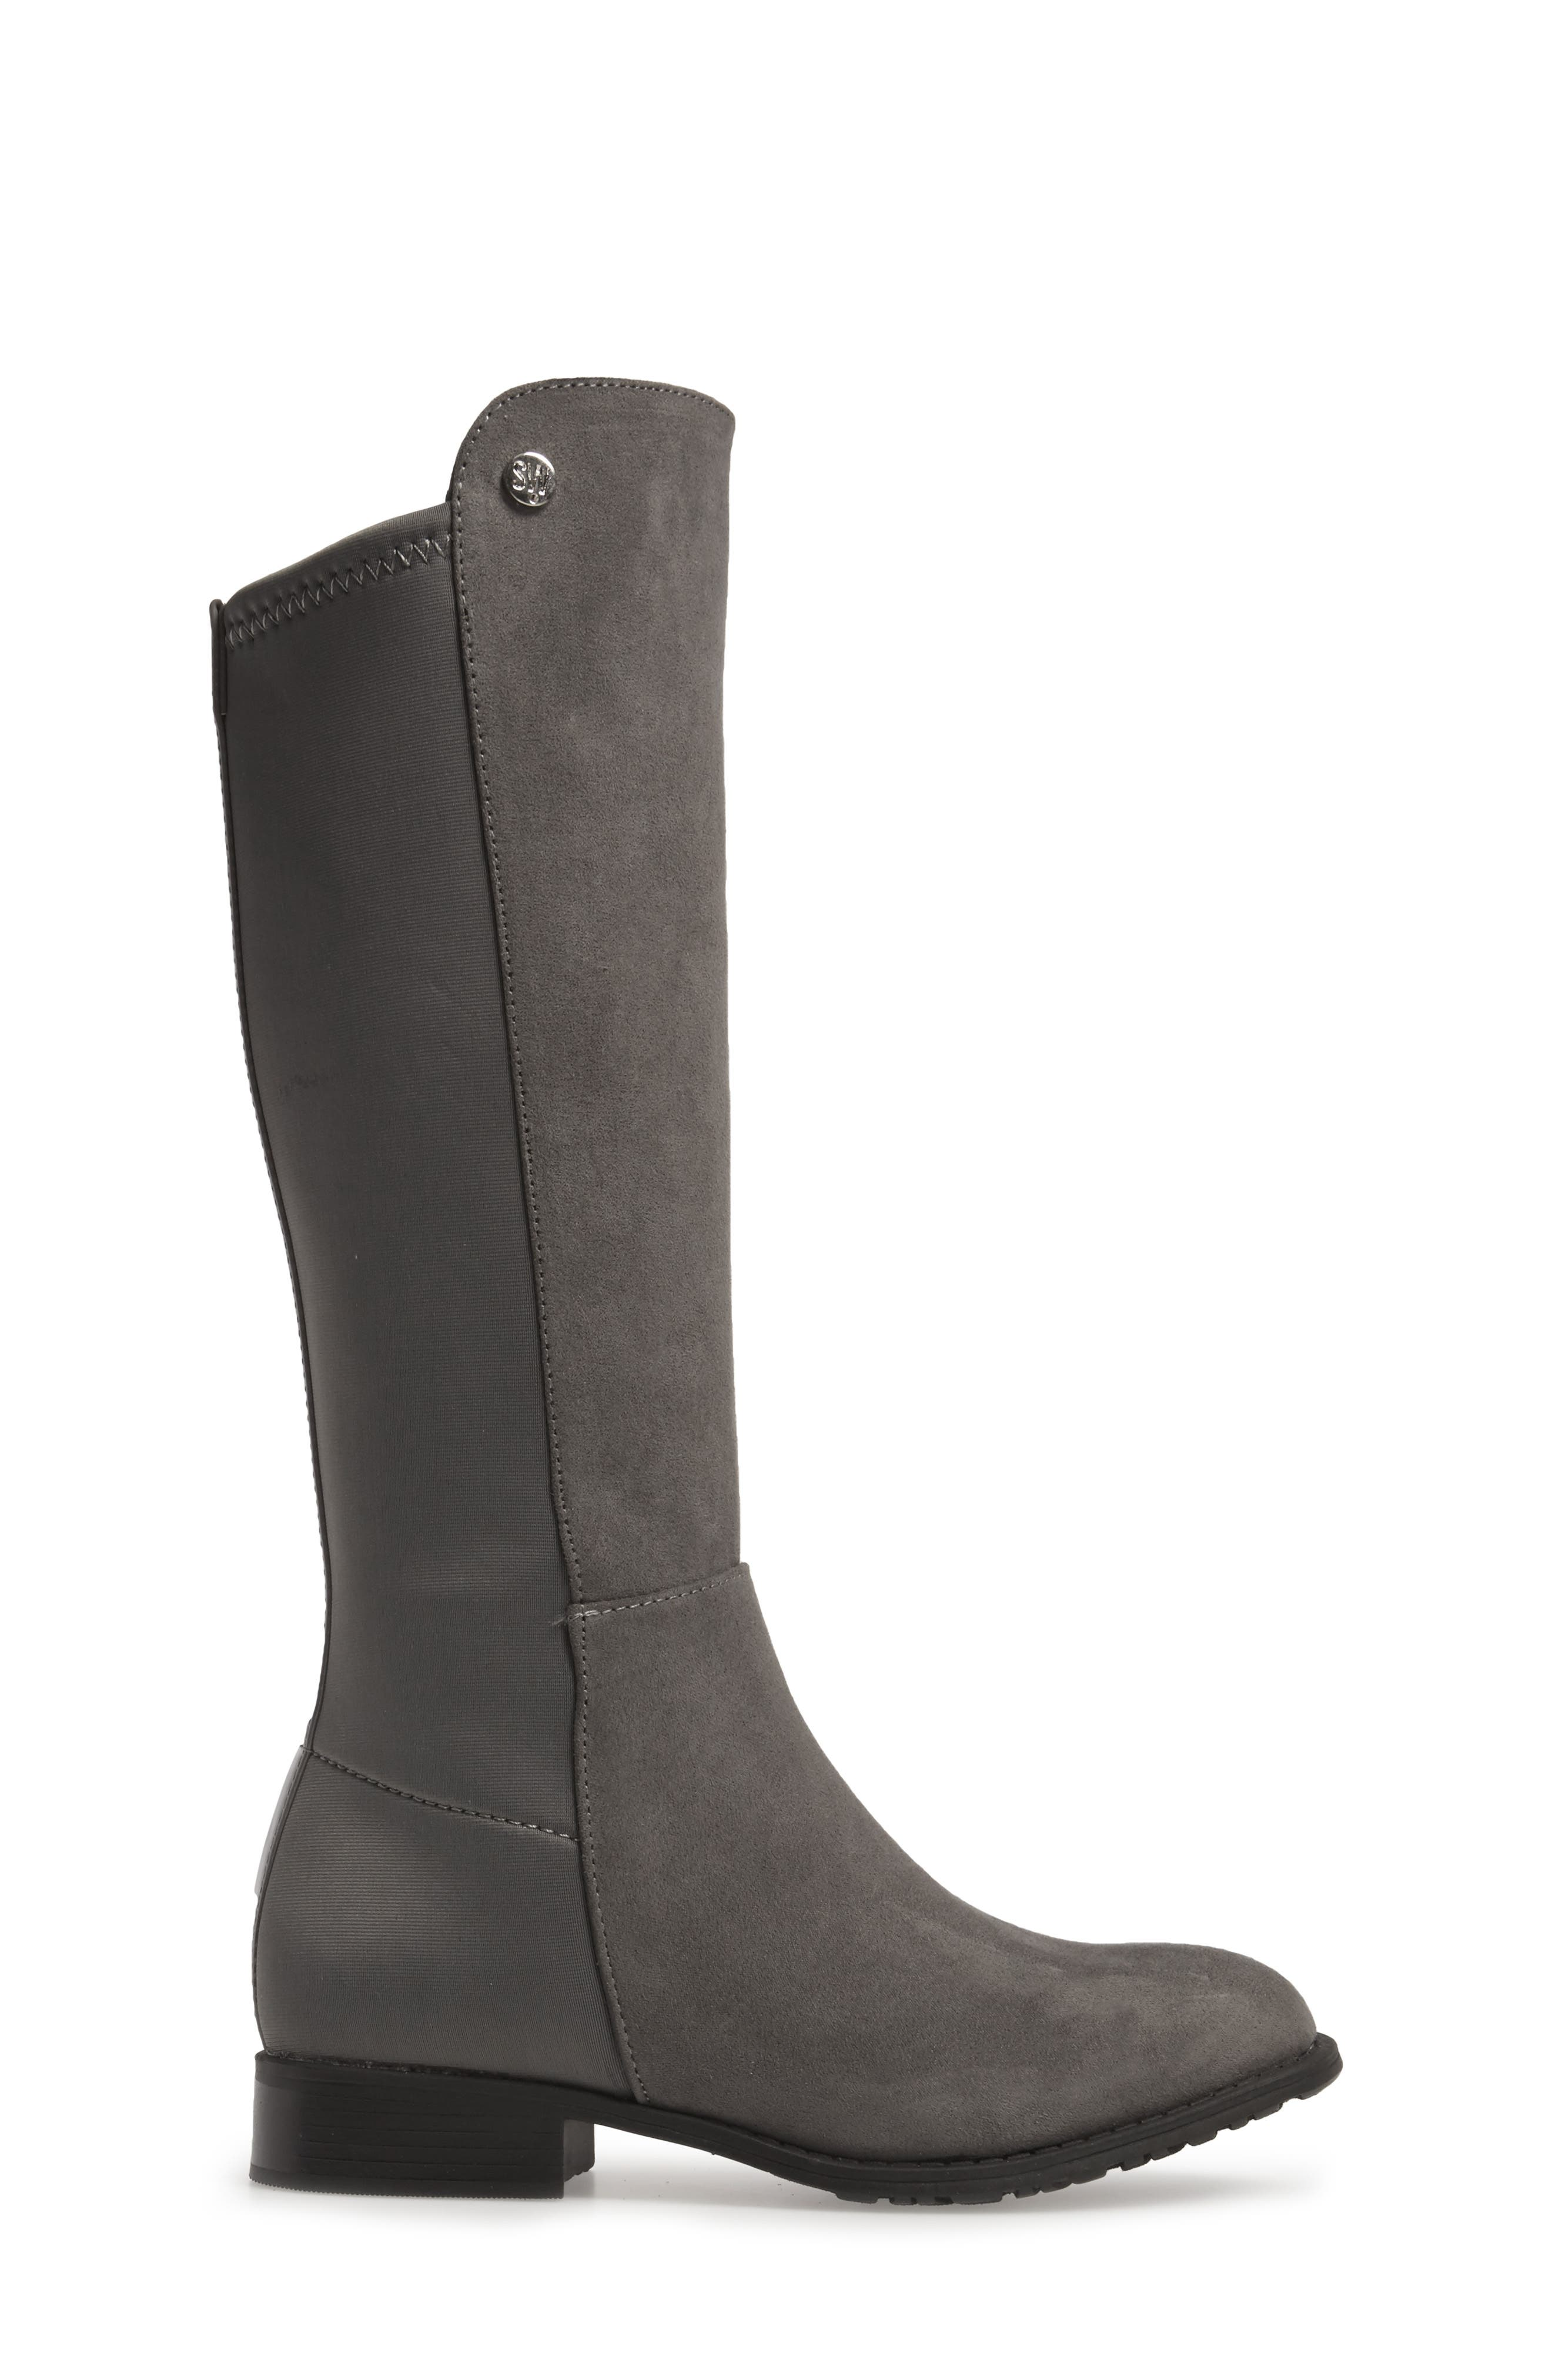 5050 Tall Riding Boot,                             Alternate thumbnail 3, color,                             050